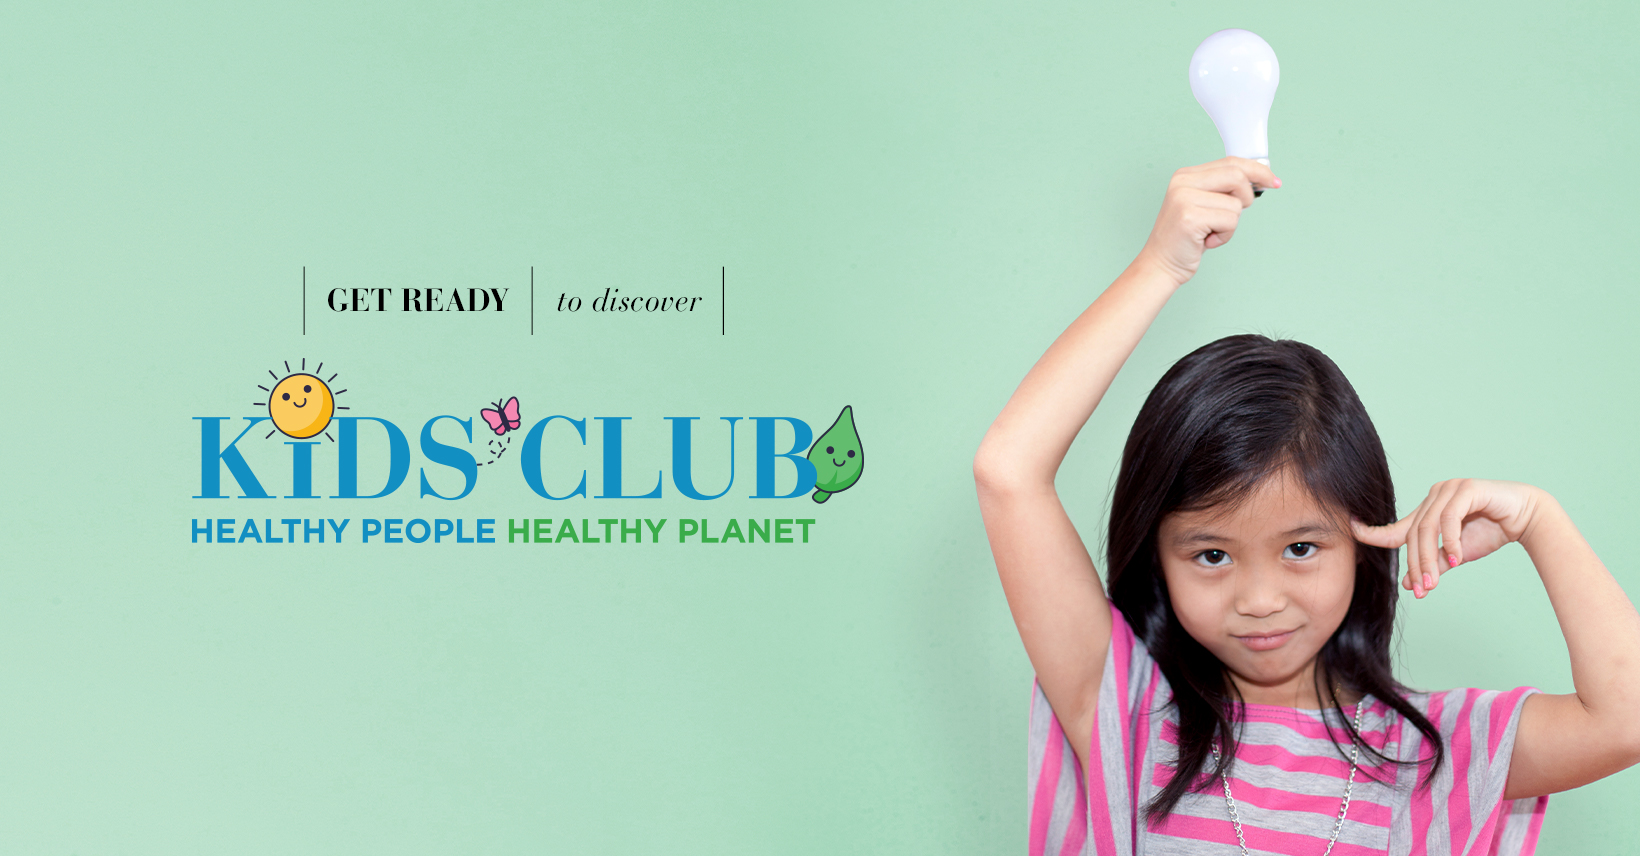 young girl holding a light bulb over her head